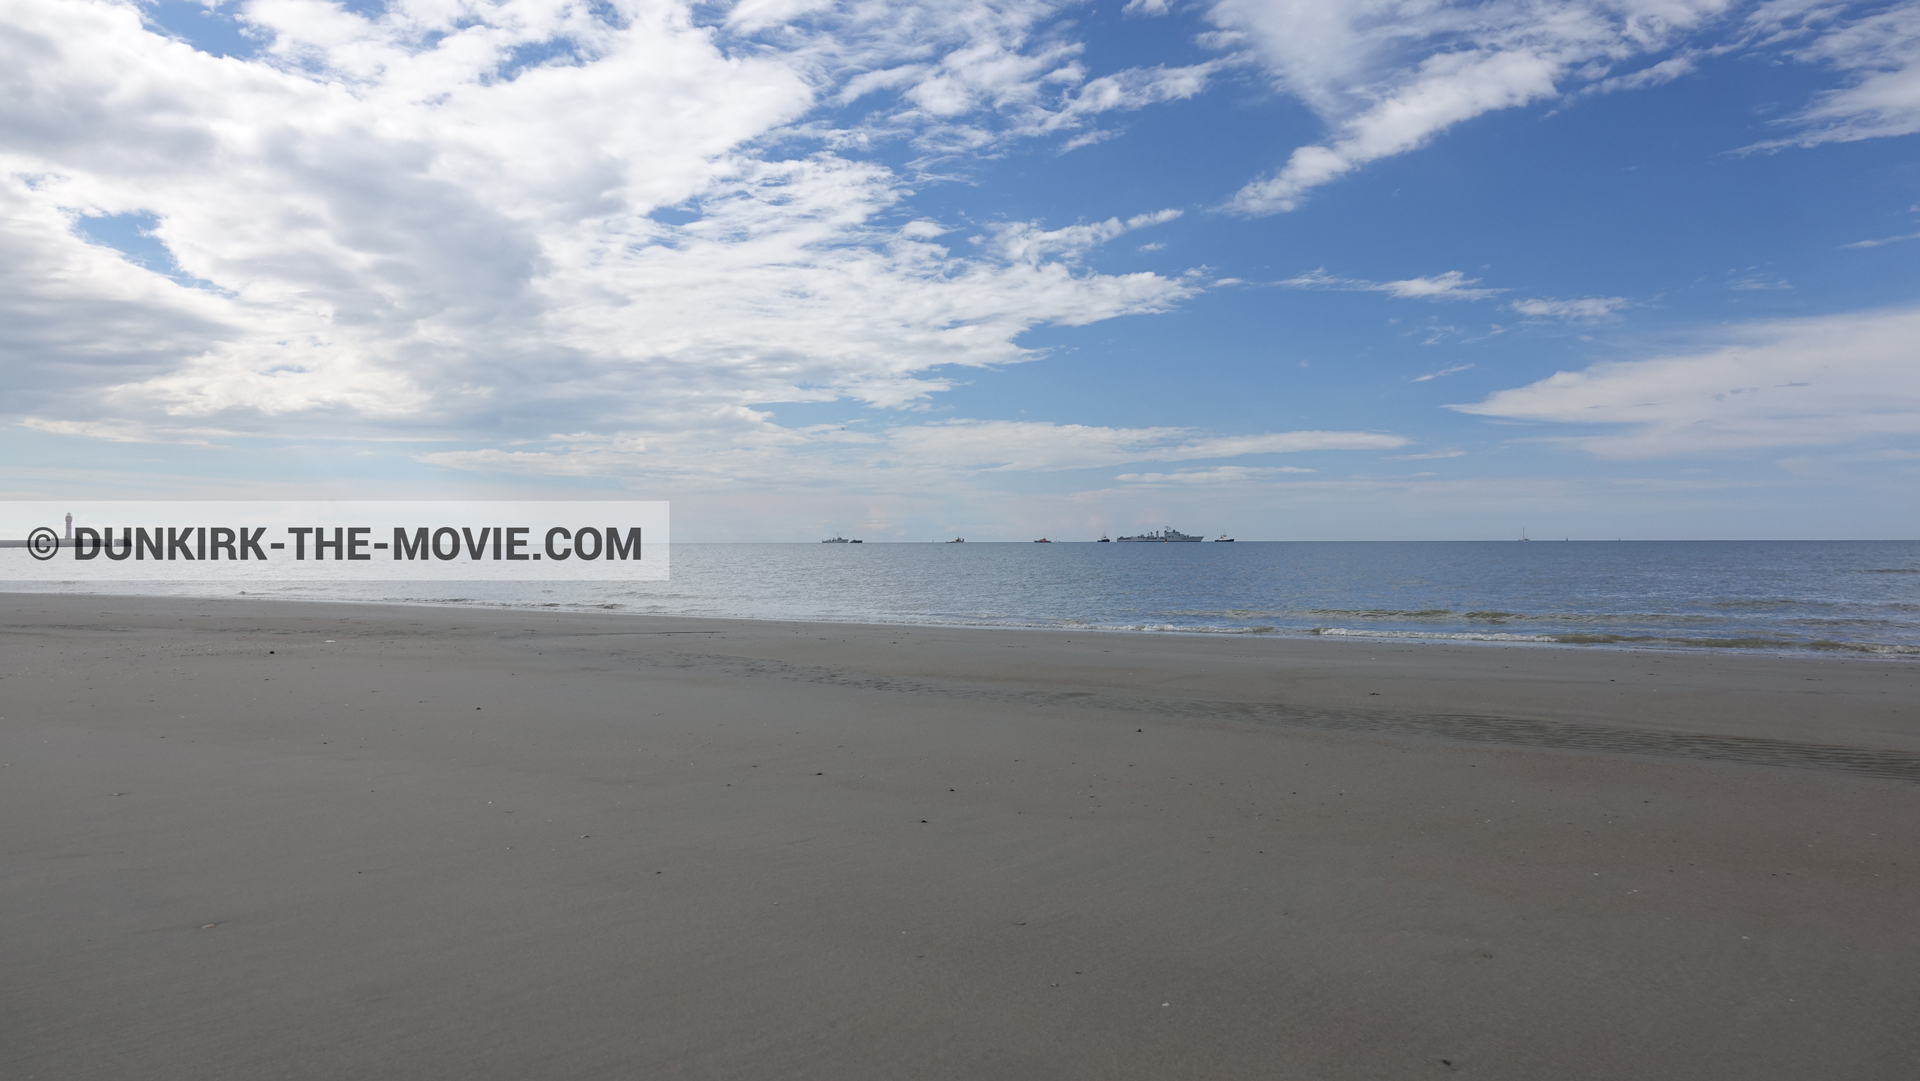 353 photos of the beach during the shooting of the movie. Black Bedroom Furniture Sets. Home Design Ideas